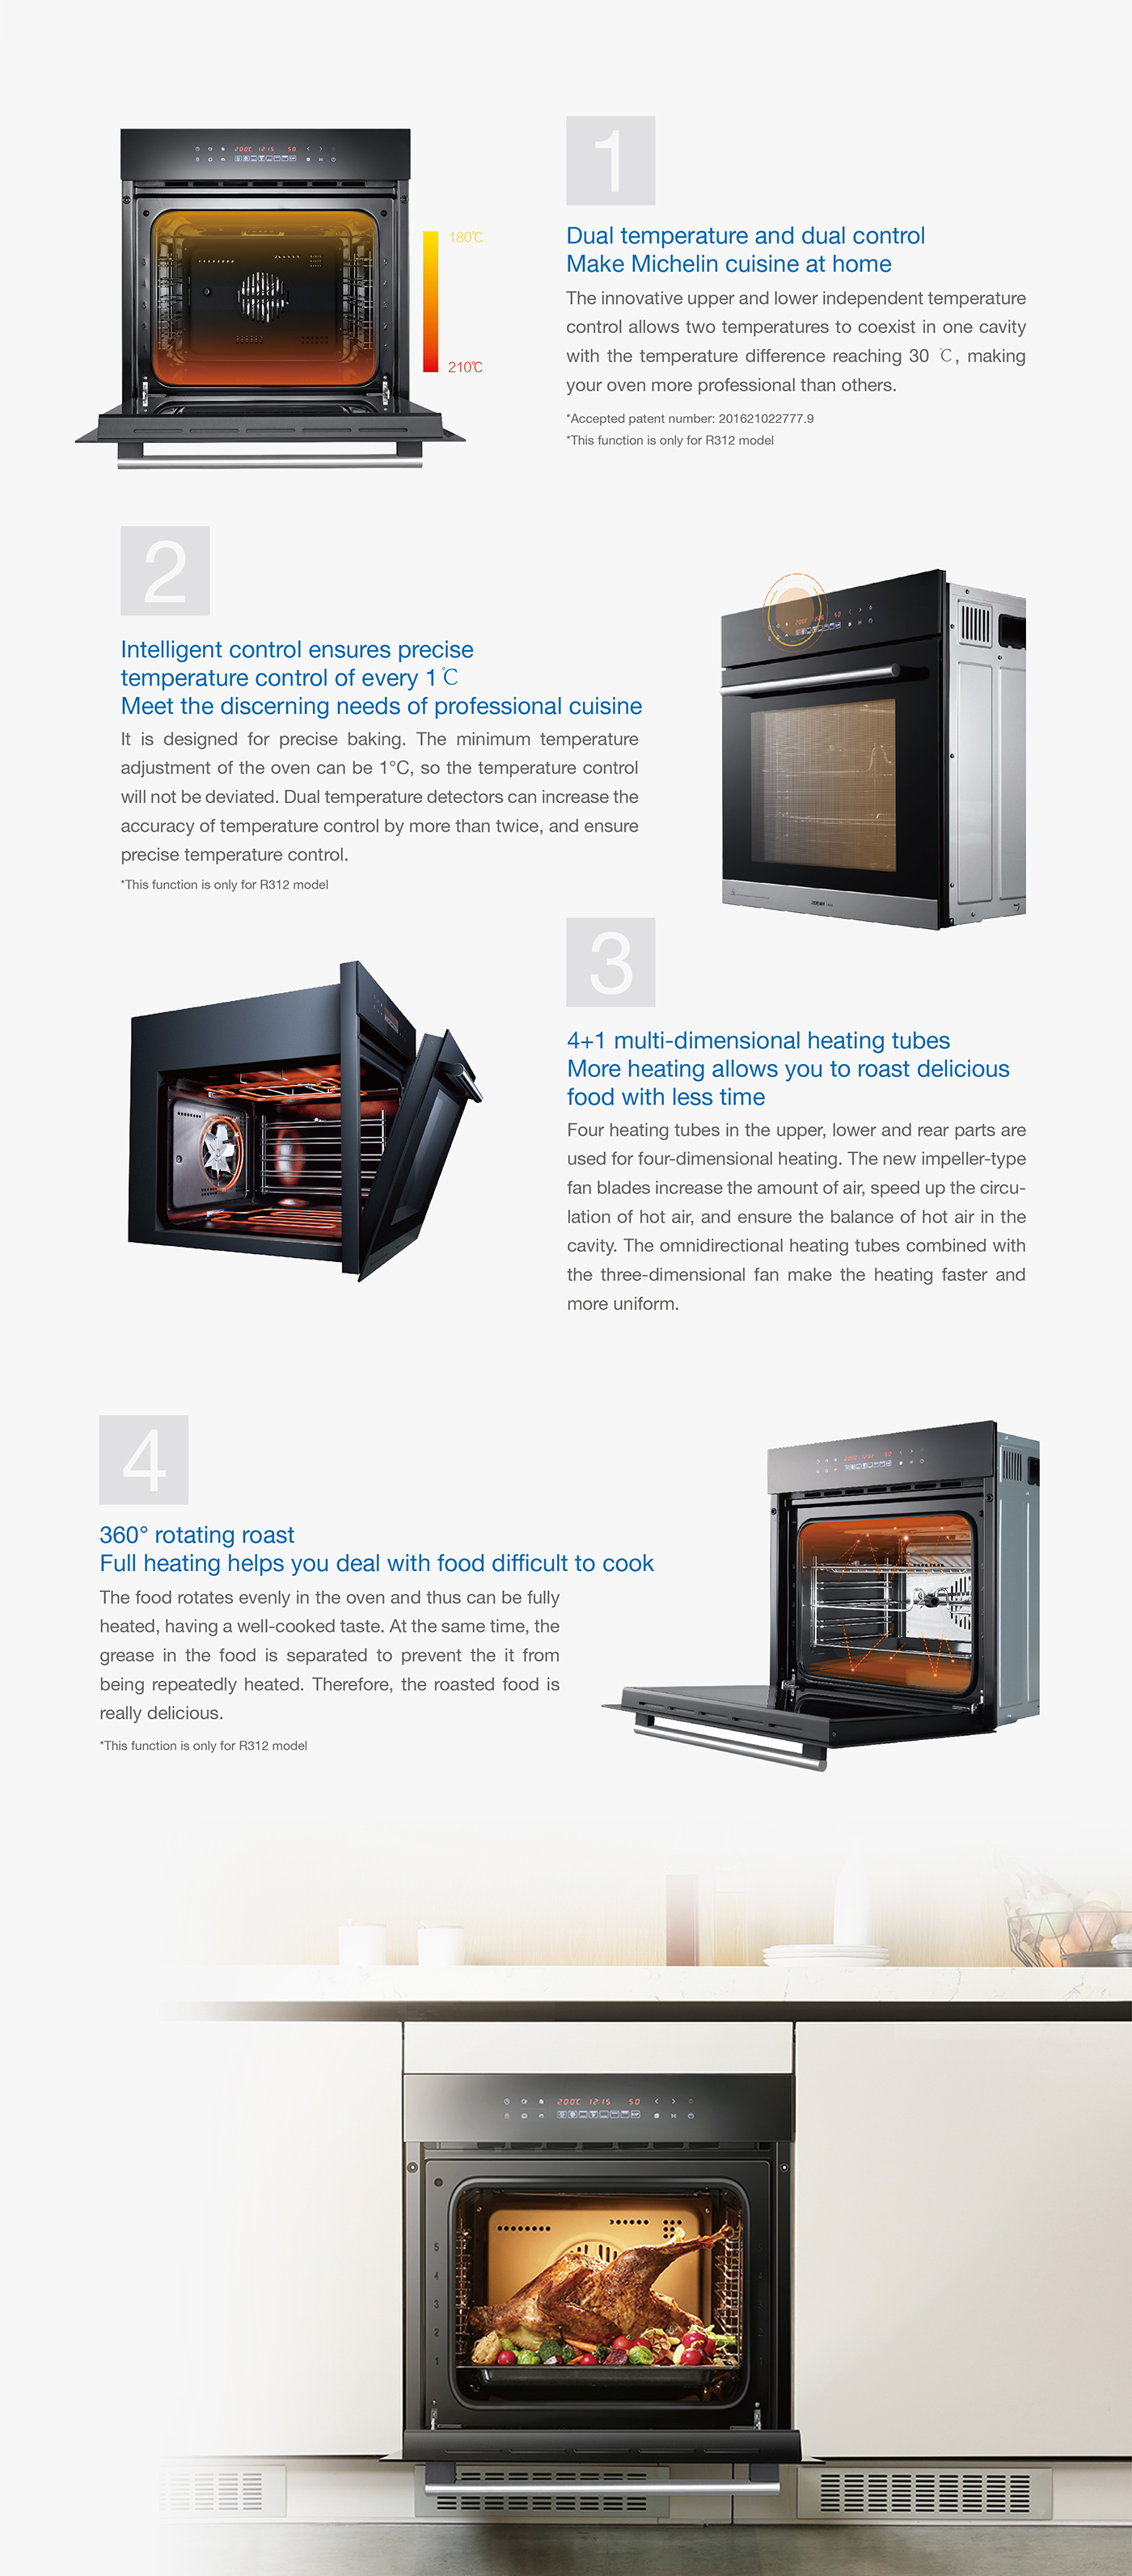 18MJ/hr annular intensive strong fire<br /><br /> Greater power Better cooking<br /><br /> ROBAM Brand-new upgraded super power gas stove B312<br /><br /> 1.Core highlights:<br /><br /> ①Linear burner arrangement for hand protection<br /><br /> ②Imported burner for greater heat<br /><br /> ③Cut-off protection for reliable safety<br /><br /> 2.Detailed information:<br /><br /> 1)Strong cooking power:<br /><br /> ①Annular Intensive Strong Fire of Upgraded Power<br /><br /> Pure copper burner,rapid heat conduction without deformation<br /><br /> Linear pure copper burner arrangement contributes to excellent heat conduction and thermal dissipation,and protects hands shifting cooker<br /><br /> ②Concentrate extreme heat for perfect stir-frying<br /><br /> Heat load up to 18MJ/h,dual ring heat,time saving frying,uniform heating and better cooking<br /><br /> ③Circular grove,stable flame ,reliable cooking<br /><br /> Patent circular grove structure,stable flame regardless of high and low pressure<br /><br /> 2)Higher heat,quicker cooking<br /><br /> Greater heat shortens waiting,rapid heating,improving efficiency by 24%<br /><br /> 3)Quick combustion makes taste of chef<br /><br /> Rapid frying locks taste and nutrition of food.<br /><br /> 4)Humanized design:<br /><br /> ①Considerate caring,0-second delay,rapid cooking<br /><br /> 0-second ignition delay,instant ignition<br /><br /> Runway zinc alloy knob,precise heat control<br /><br /> ②Easy cleaning,wipe and clean<br /><br /> Removable burner facilitates cleaning<br /><br /> Stainless steel water tray,dirt hides nowhere<br /><br /> ③Safe protection,free from risk when soup spills<br /><br /> Automatic flameout protection, gas source cut off at flame failure<br /><br /> 8mm black-crystal explosion-proof toughed glass